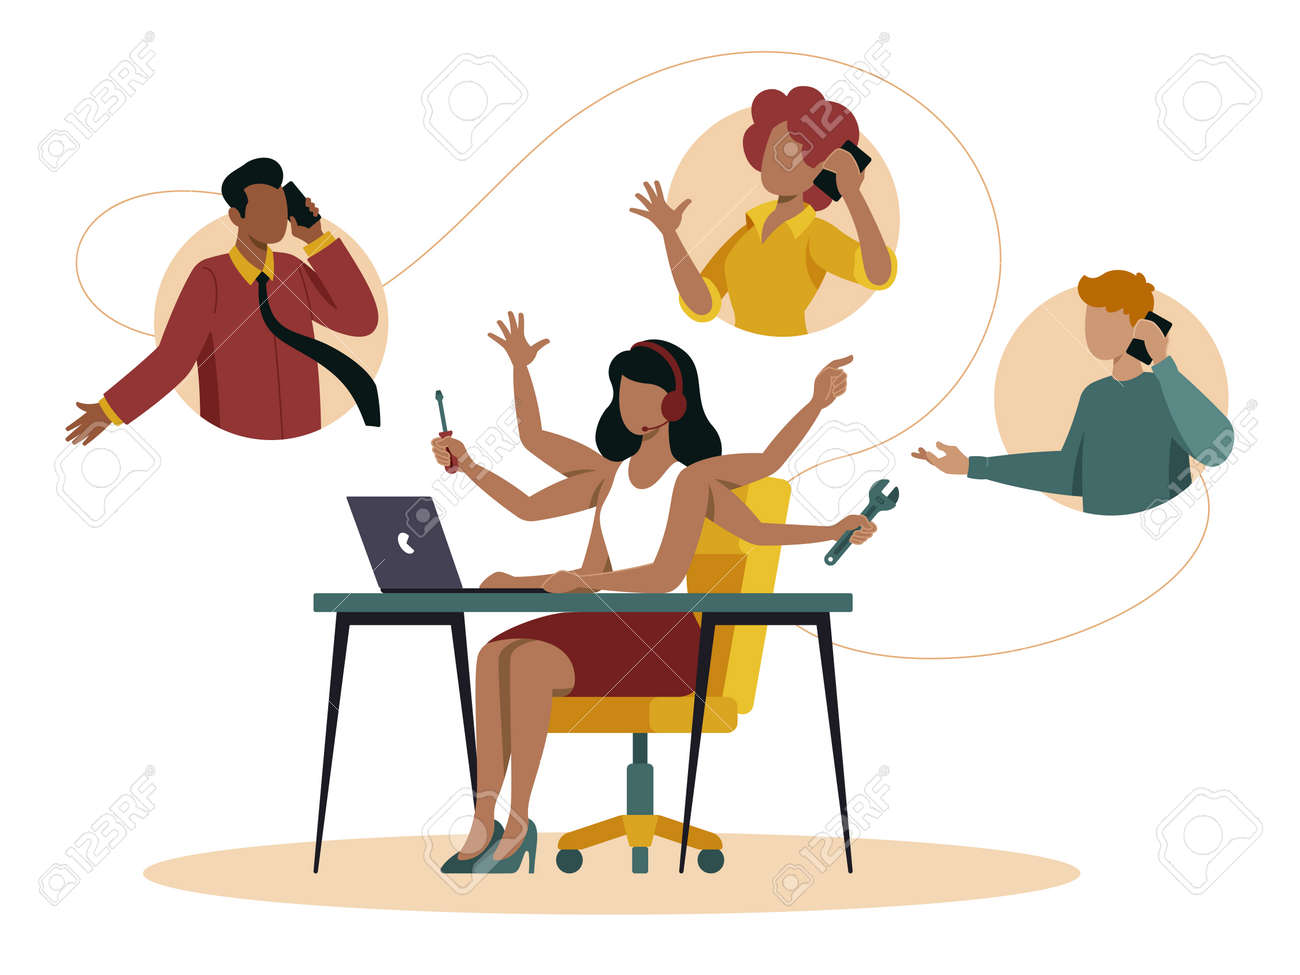 Call center illustration shows in flat vector - 168742713